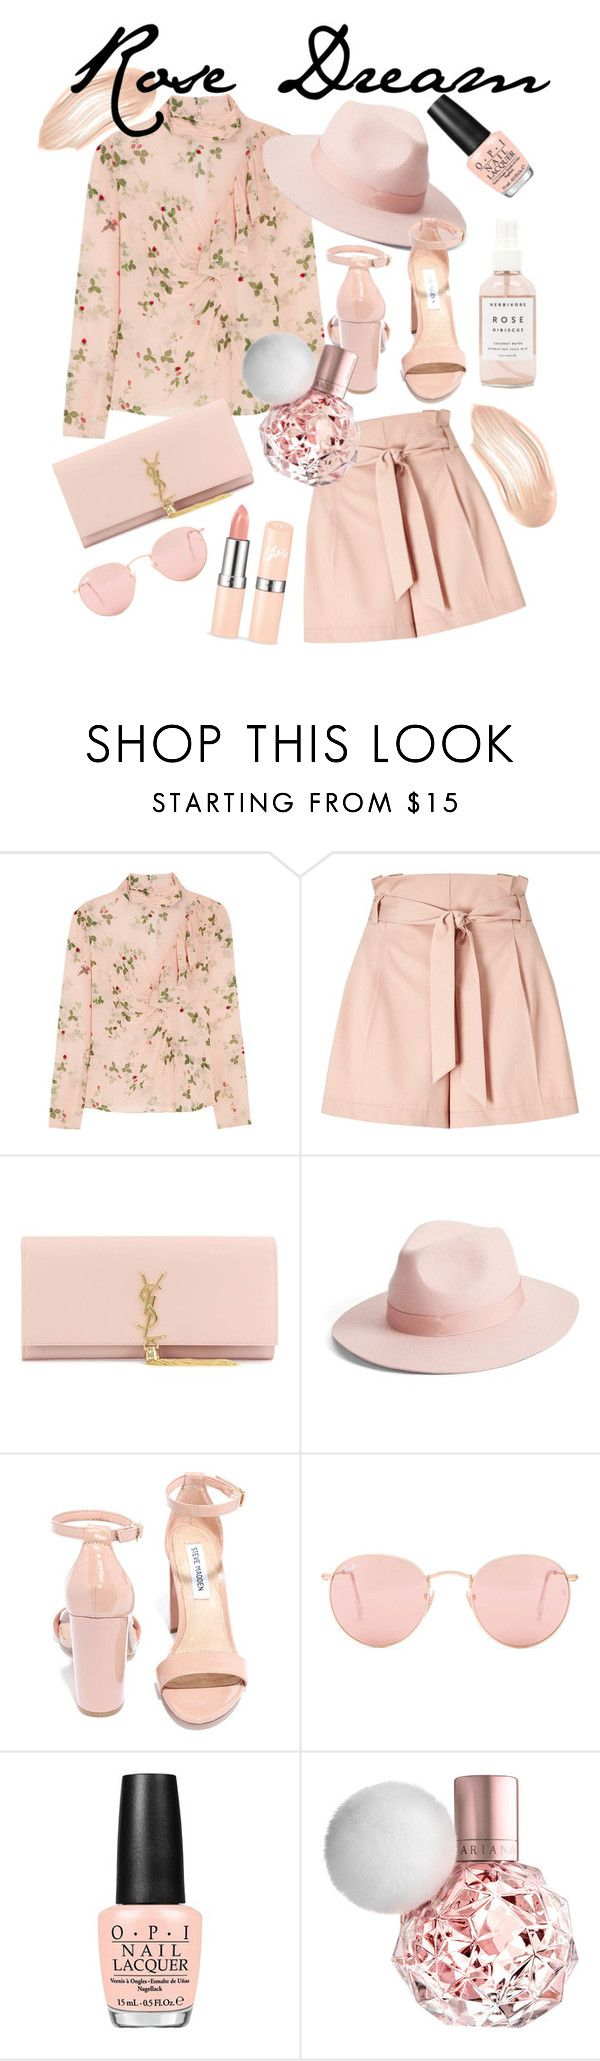 """""""Rose Dream"""" by stylebycharlene on Polyvore featuring Topshop Unique, Miss Selfridge, Yves Saint Laurent, Lack of Color, Steve Madden, Ray-Ban, OPI and Herbivore"""